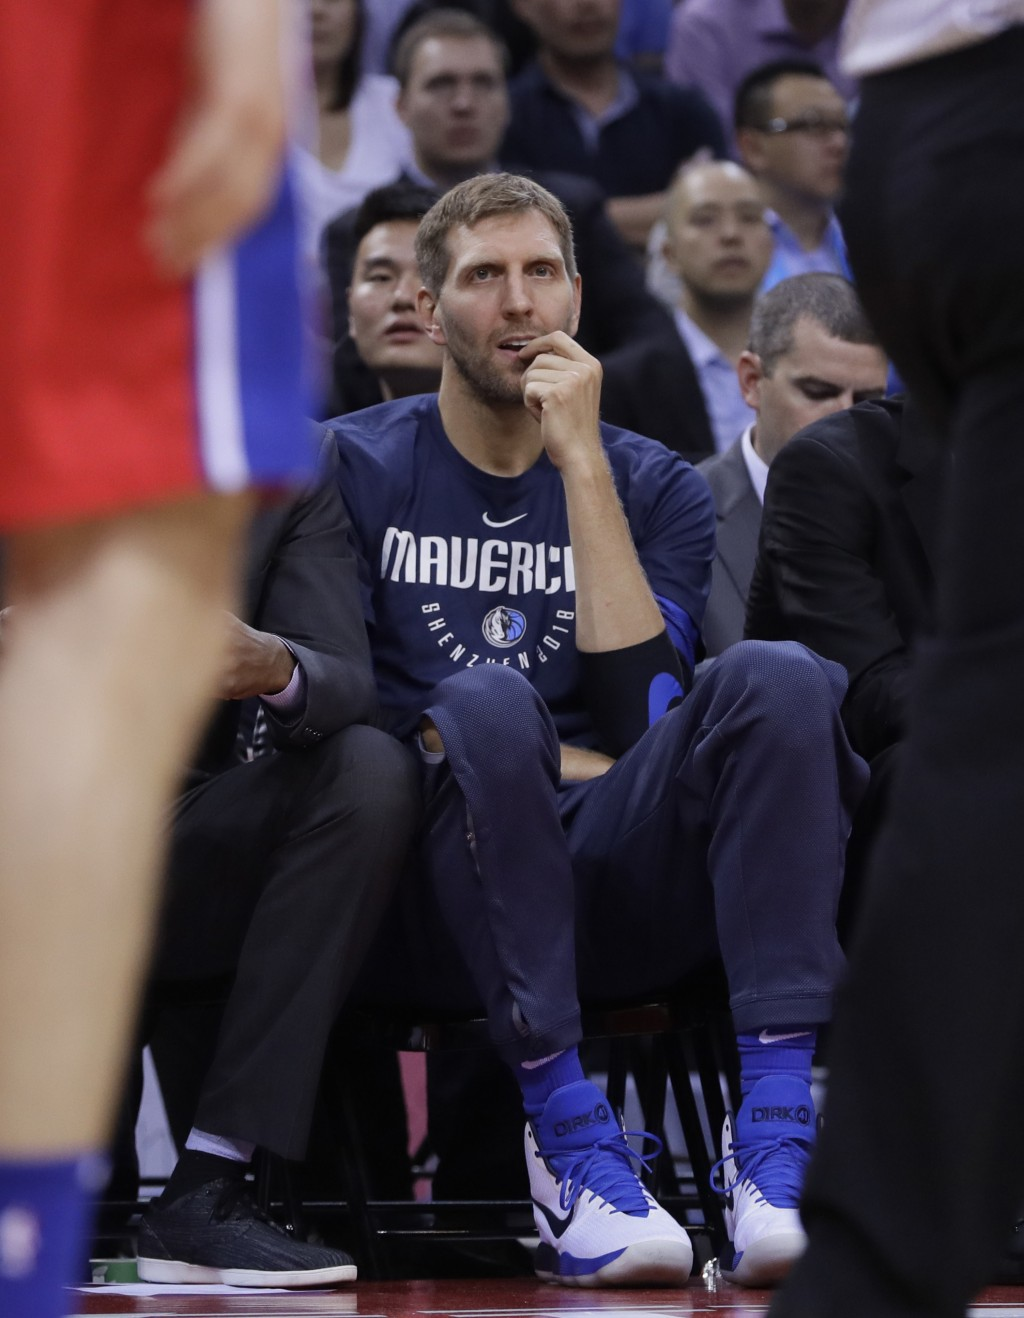 Dirk Nowitzki of the Dallas Mavericks, center, gestures during the Shenzhen basketball match between the Philadelphia 76ers and the Dallas Maverick, p